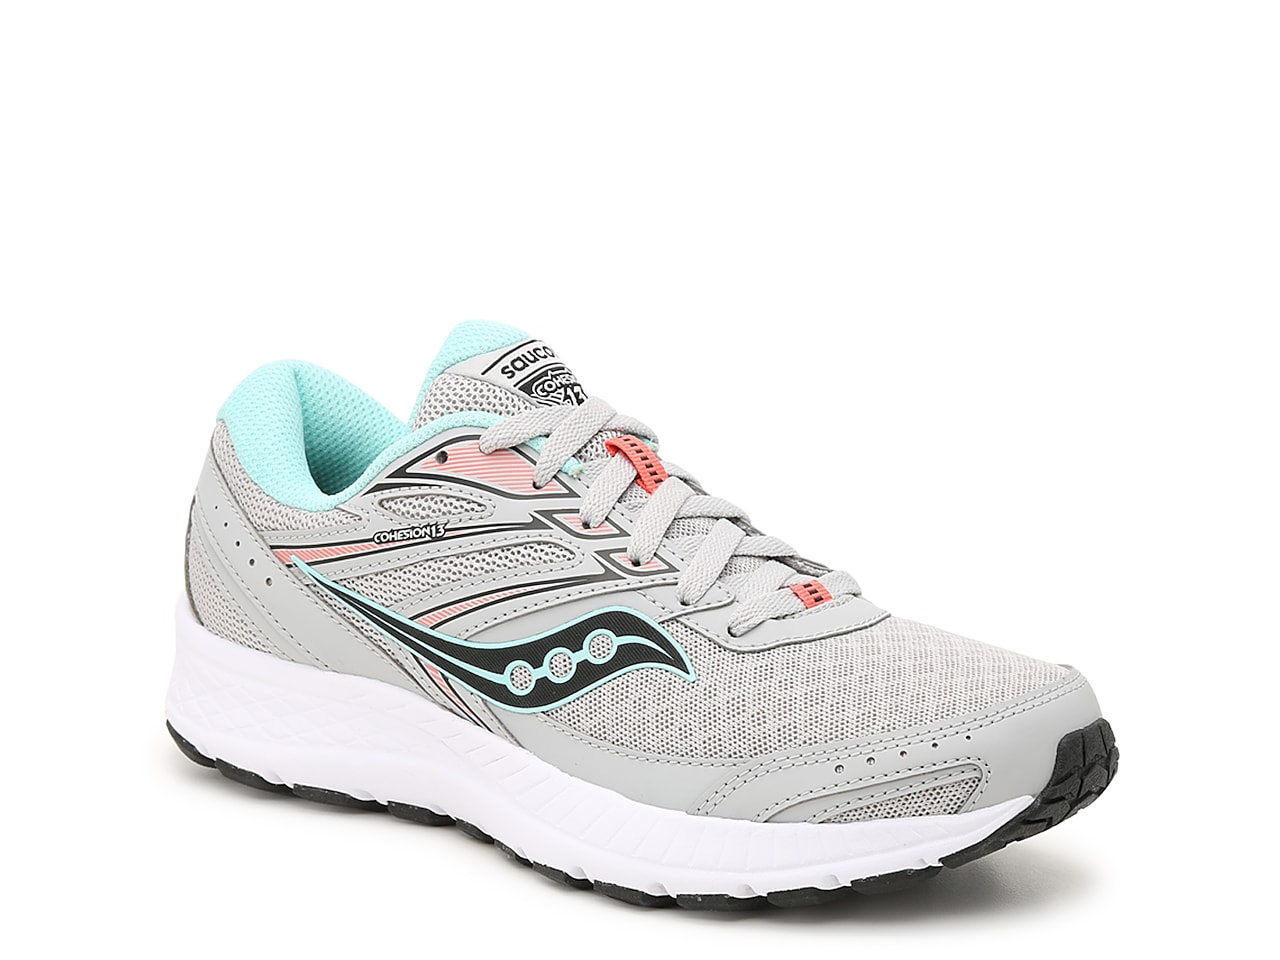 Cohesion 13 Running Shoe - Women's